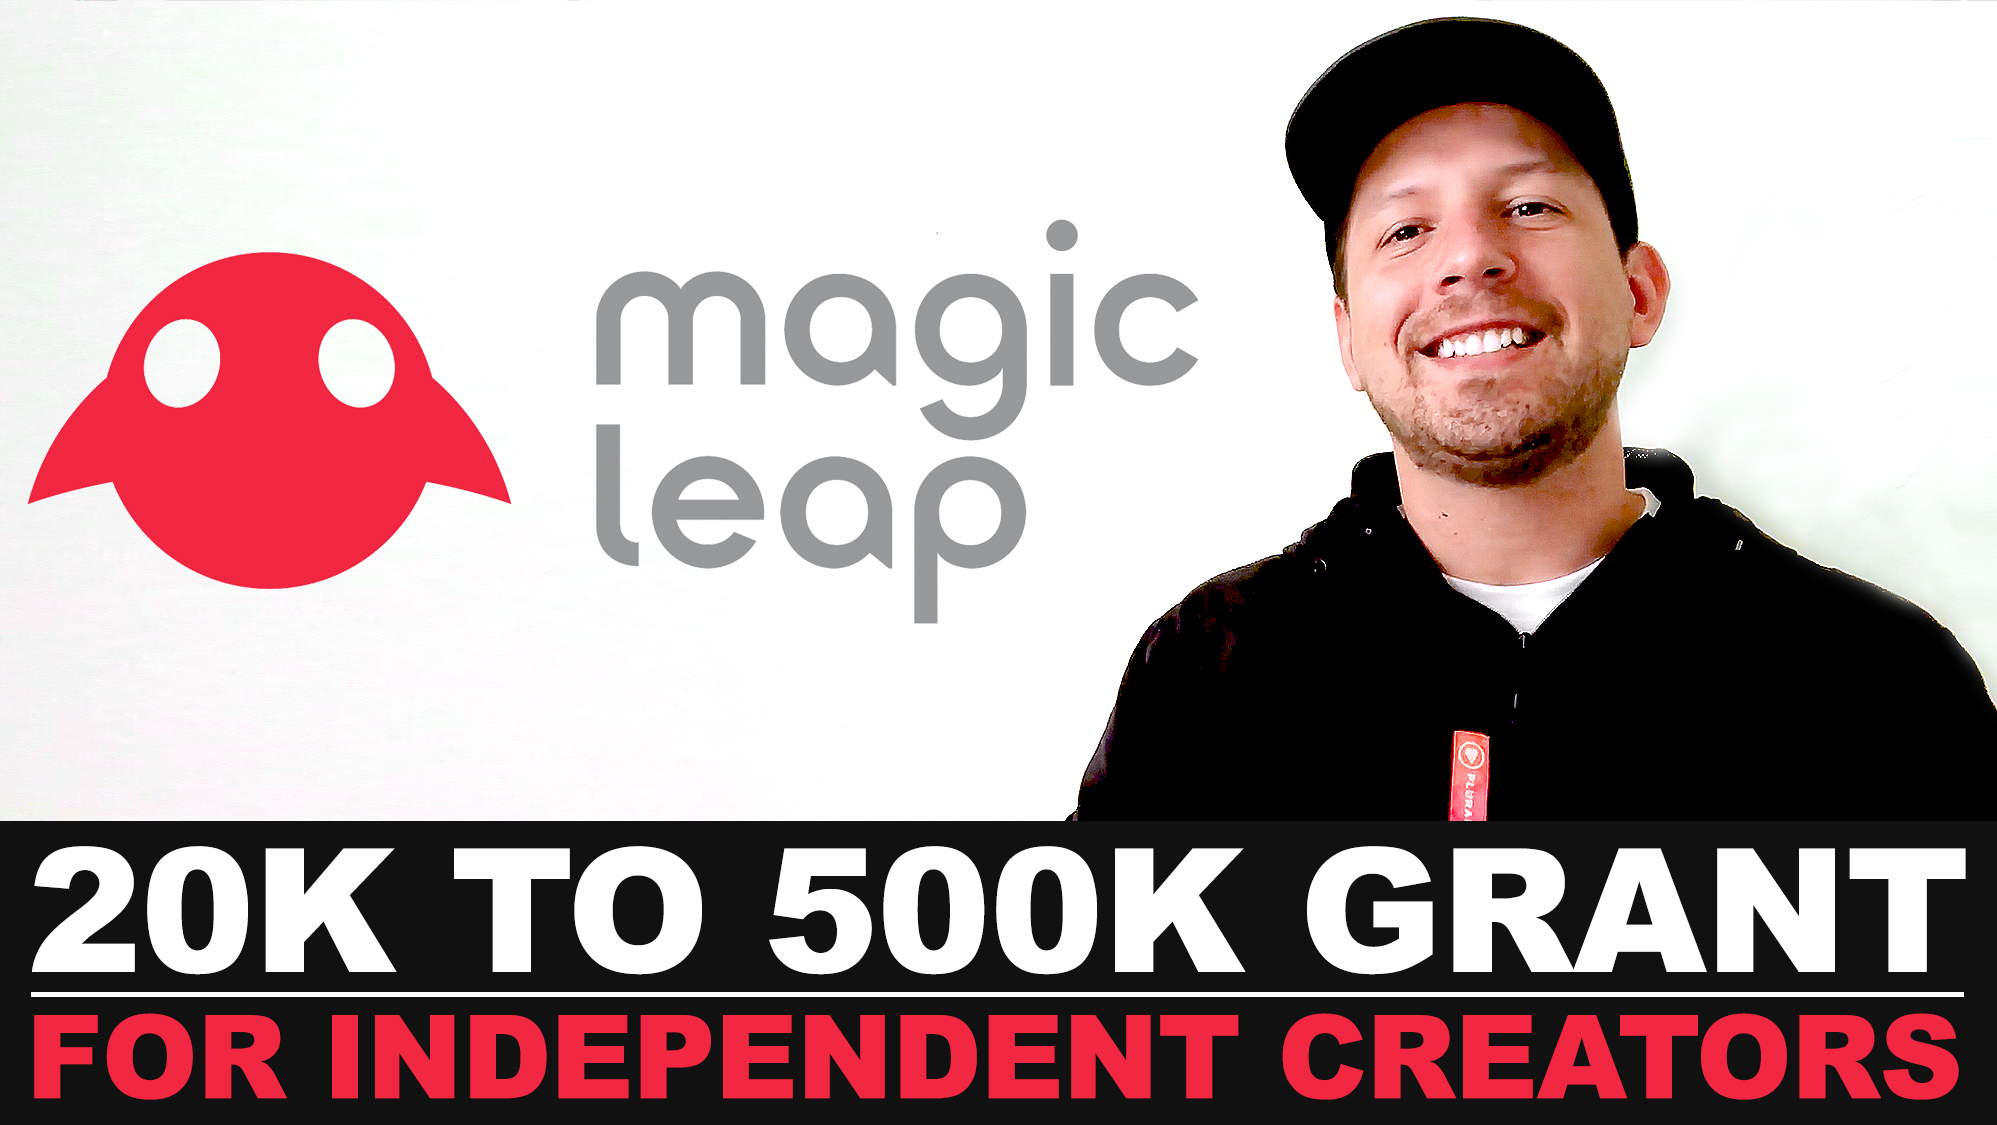 HOW TO APPLY FOR MAGIC LEAP GRANT? Independent creators with ideas for magic leap grant